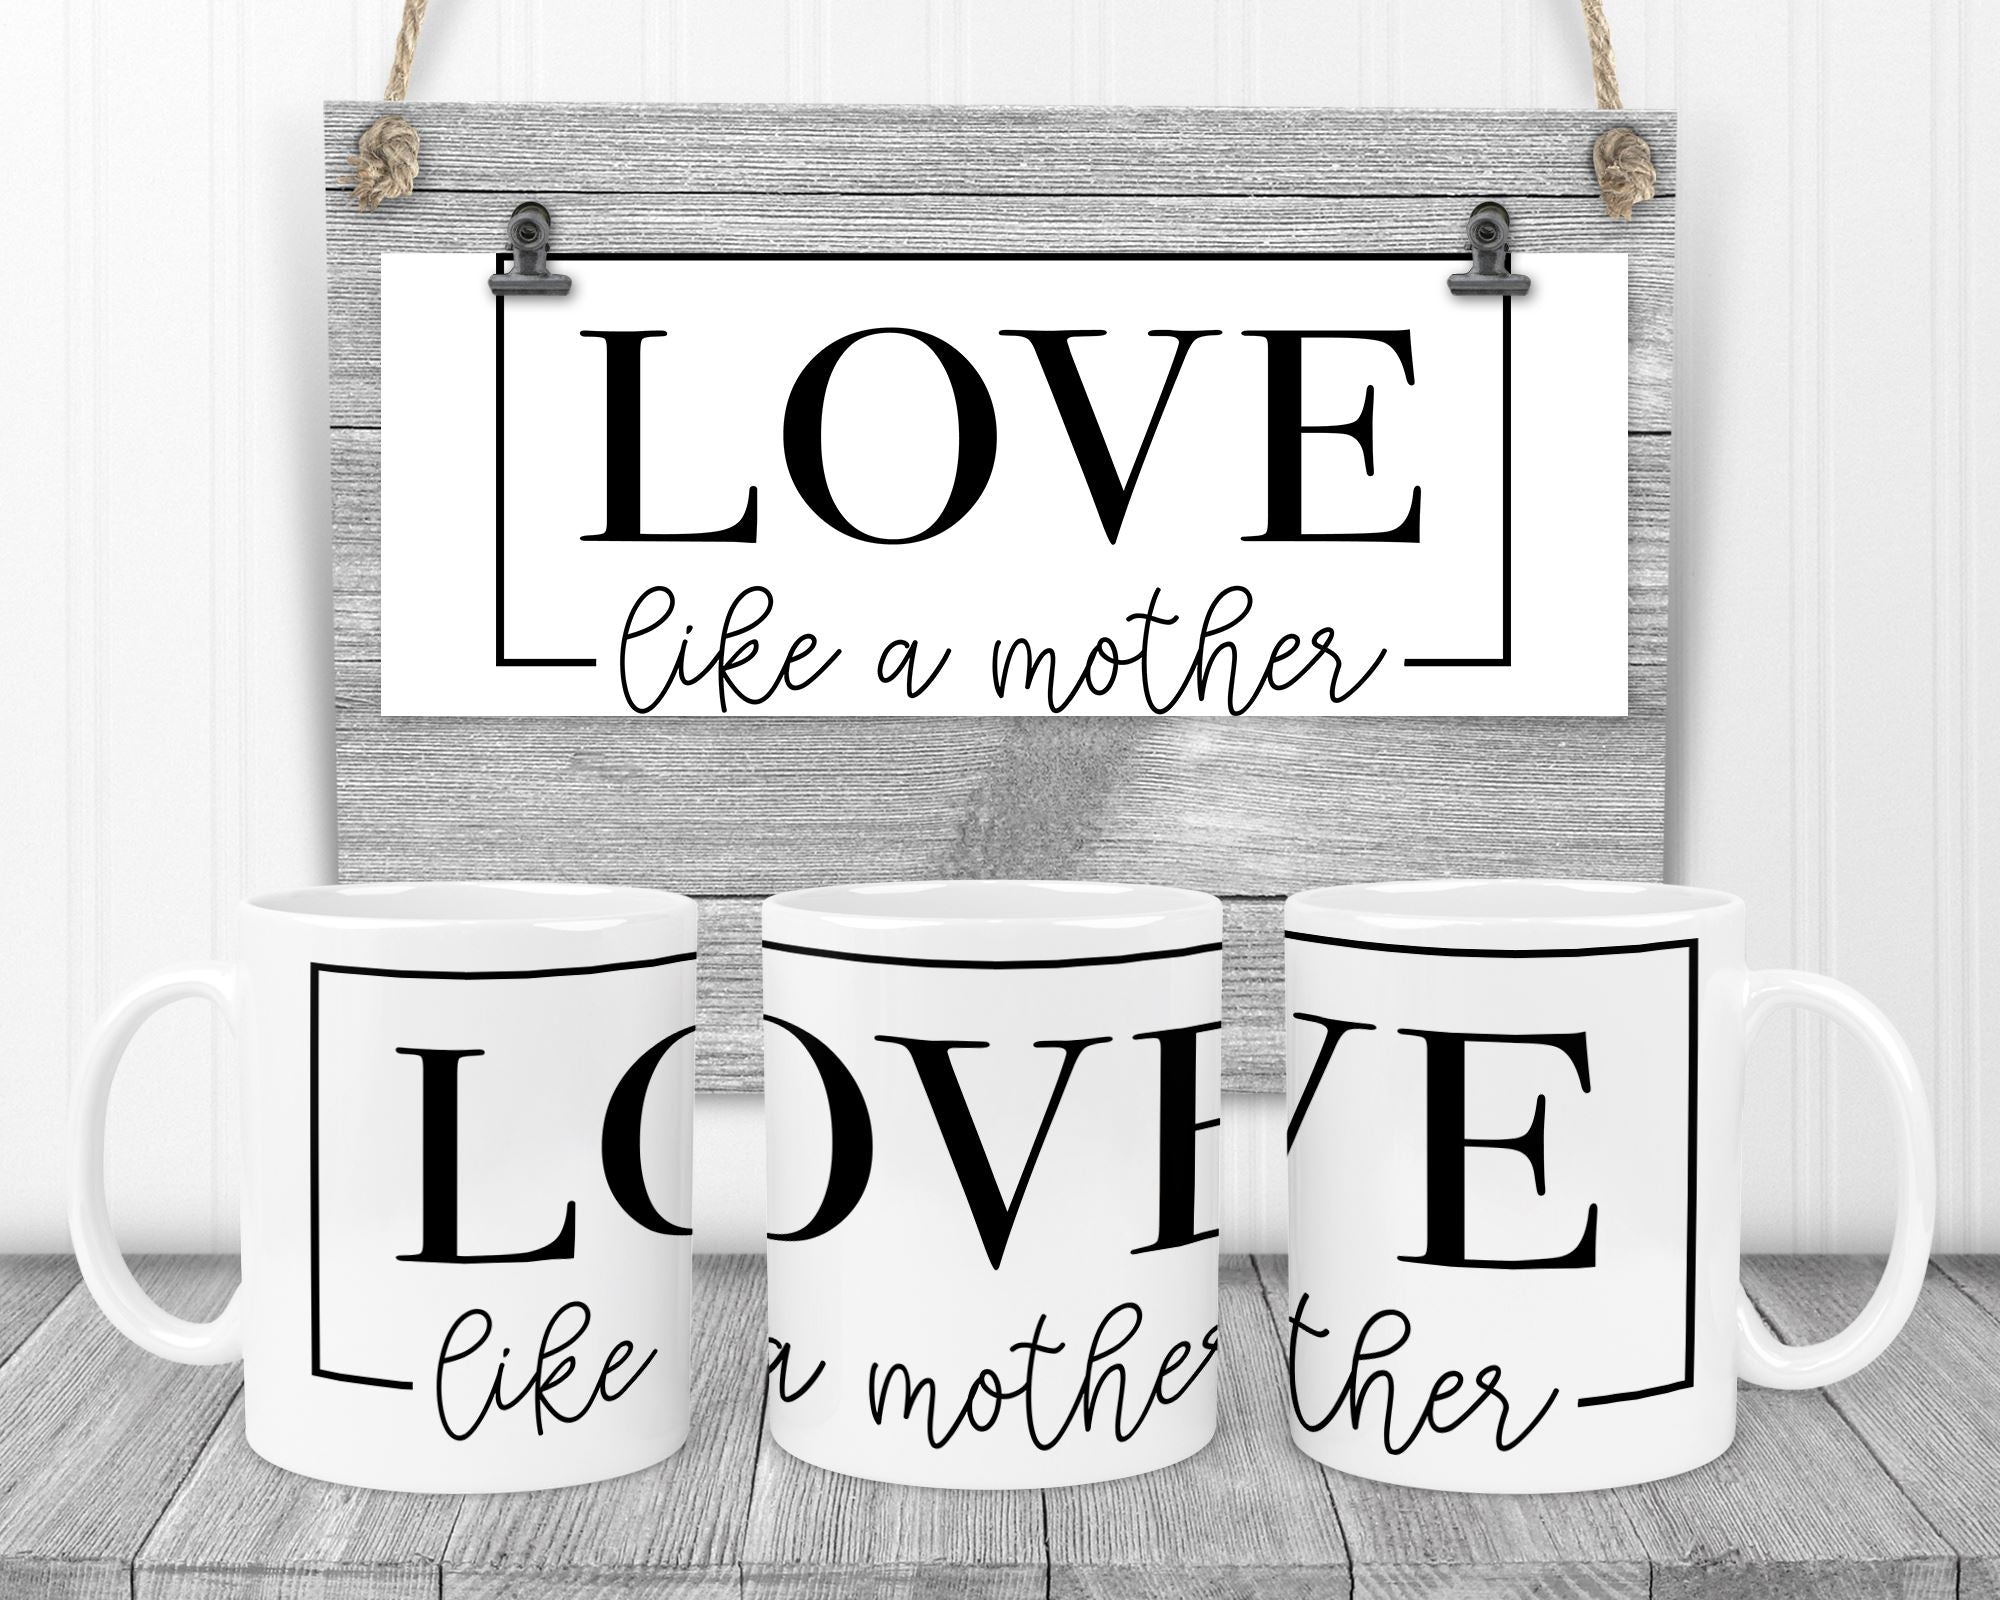 """Love like a mother"" Mug mug The Teal Bandit"